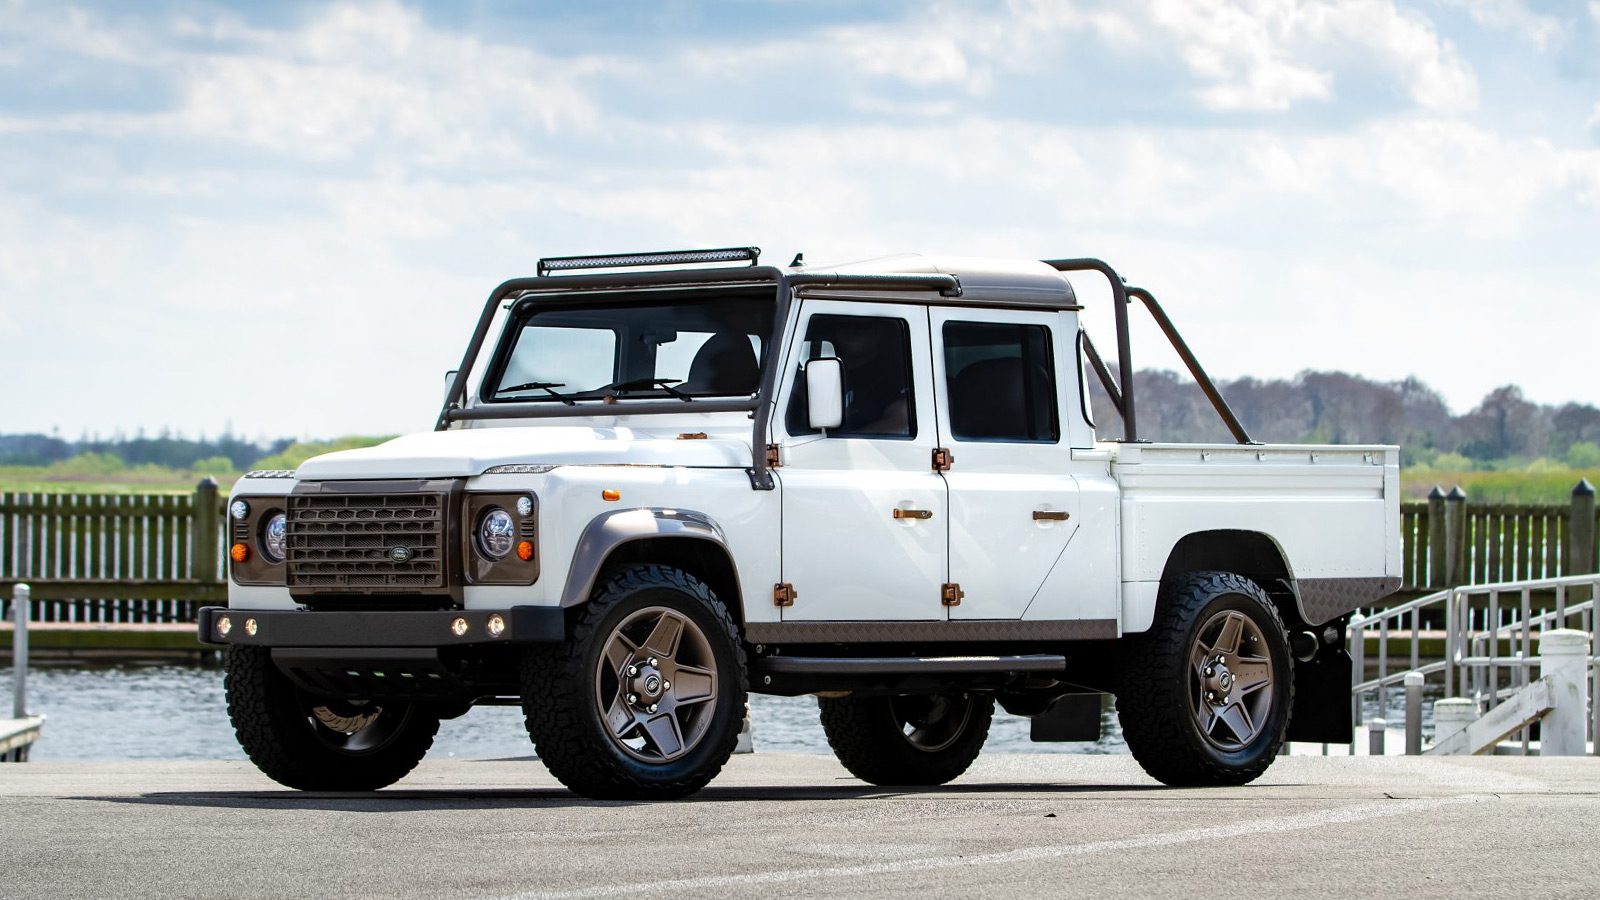 Land Rover Defender 130 'Project Barge' by ECD